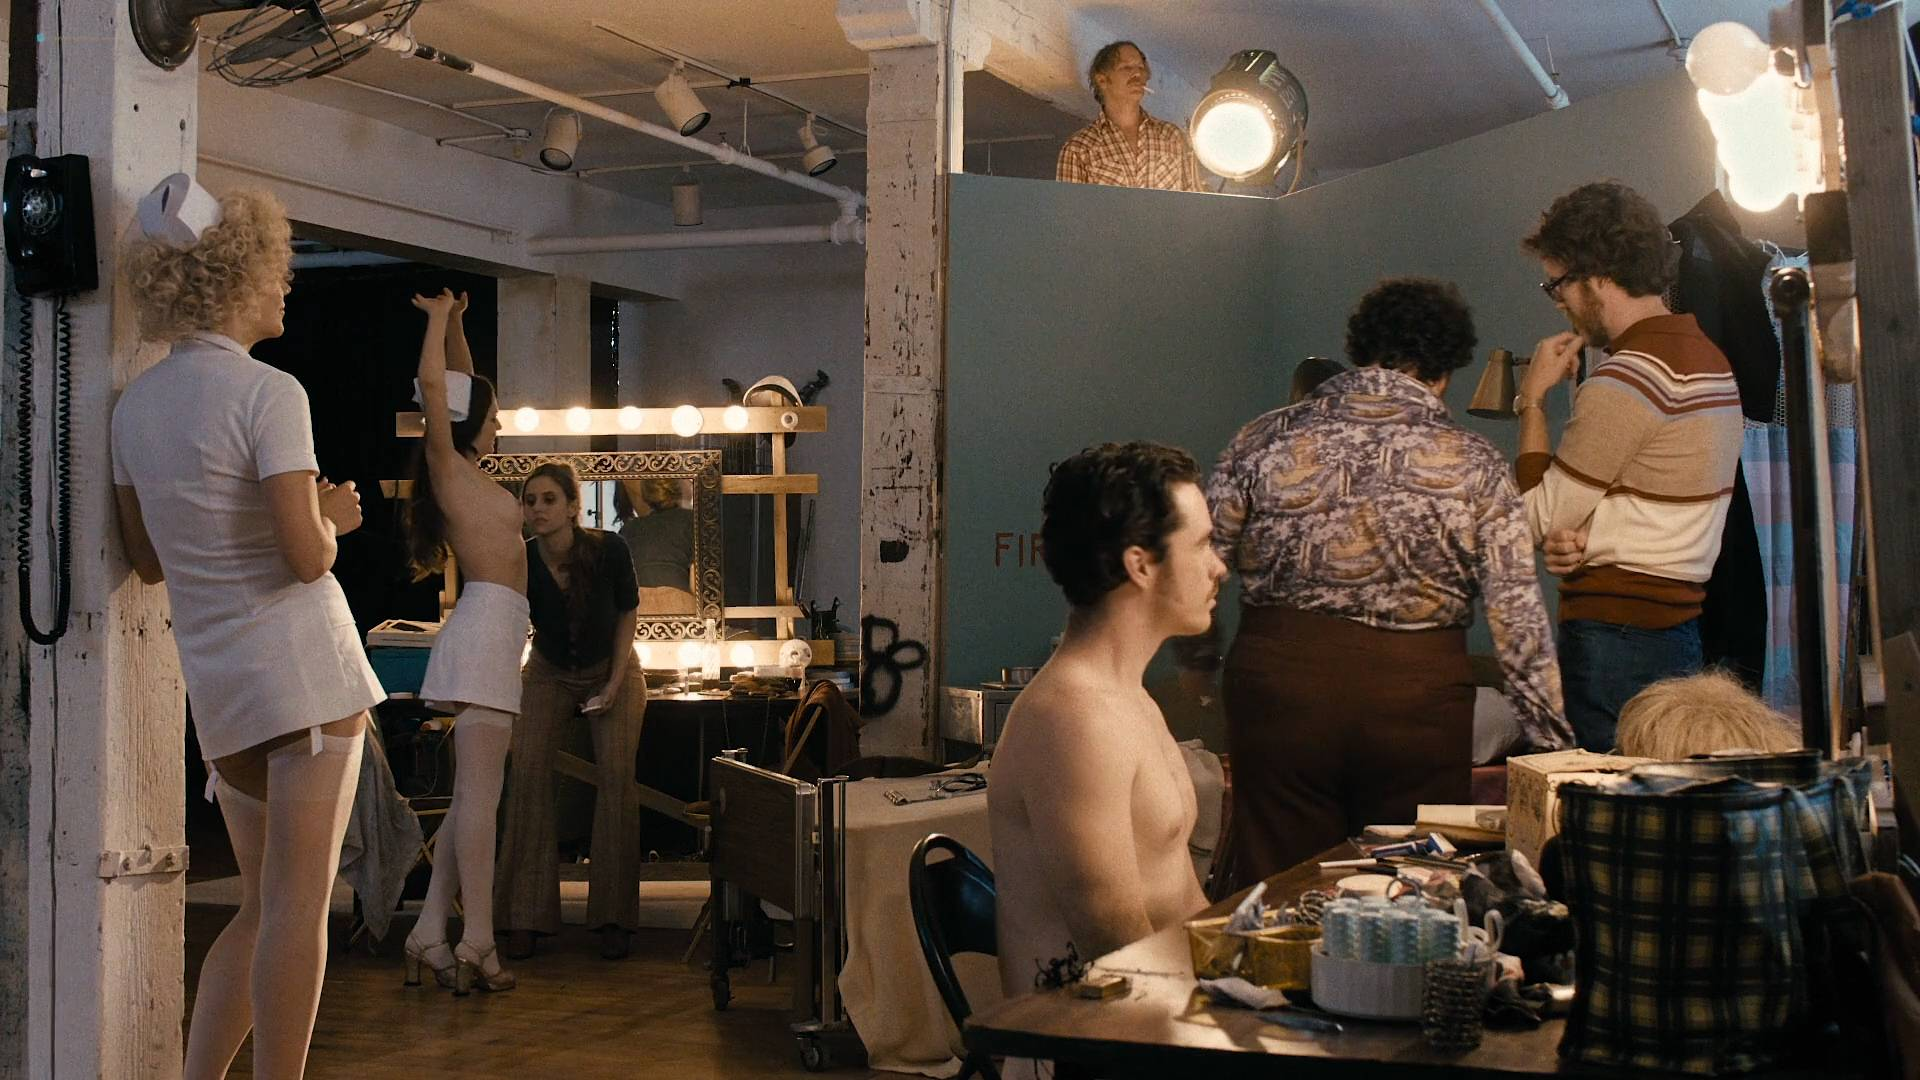 Maggie Gyllenhaal nude topless sex Margarita Levieva and Emily Meade nude - The Deuce (2017) s1e6 HD 1080p (3)